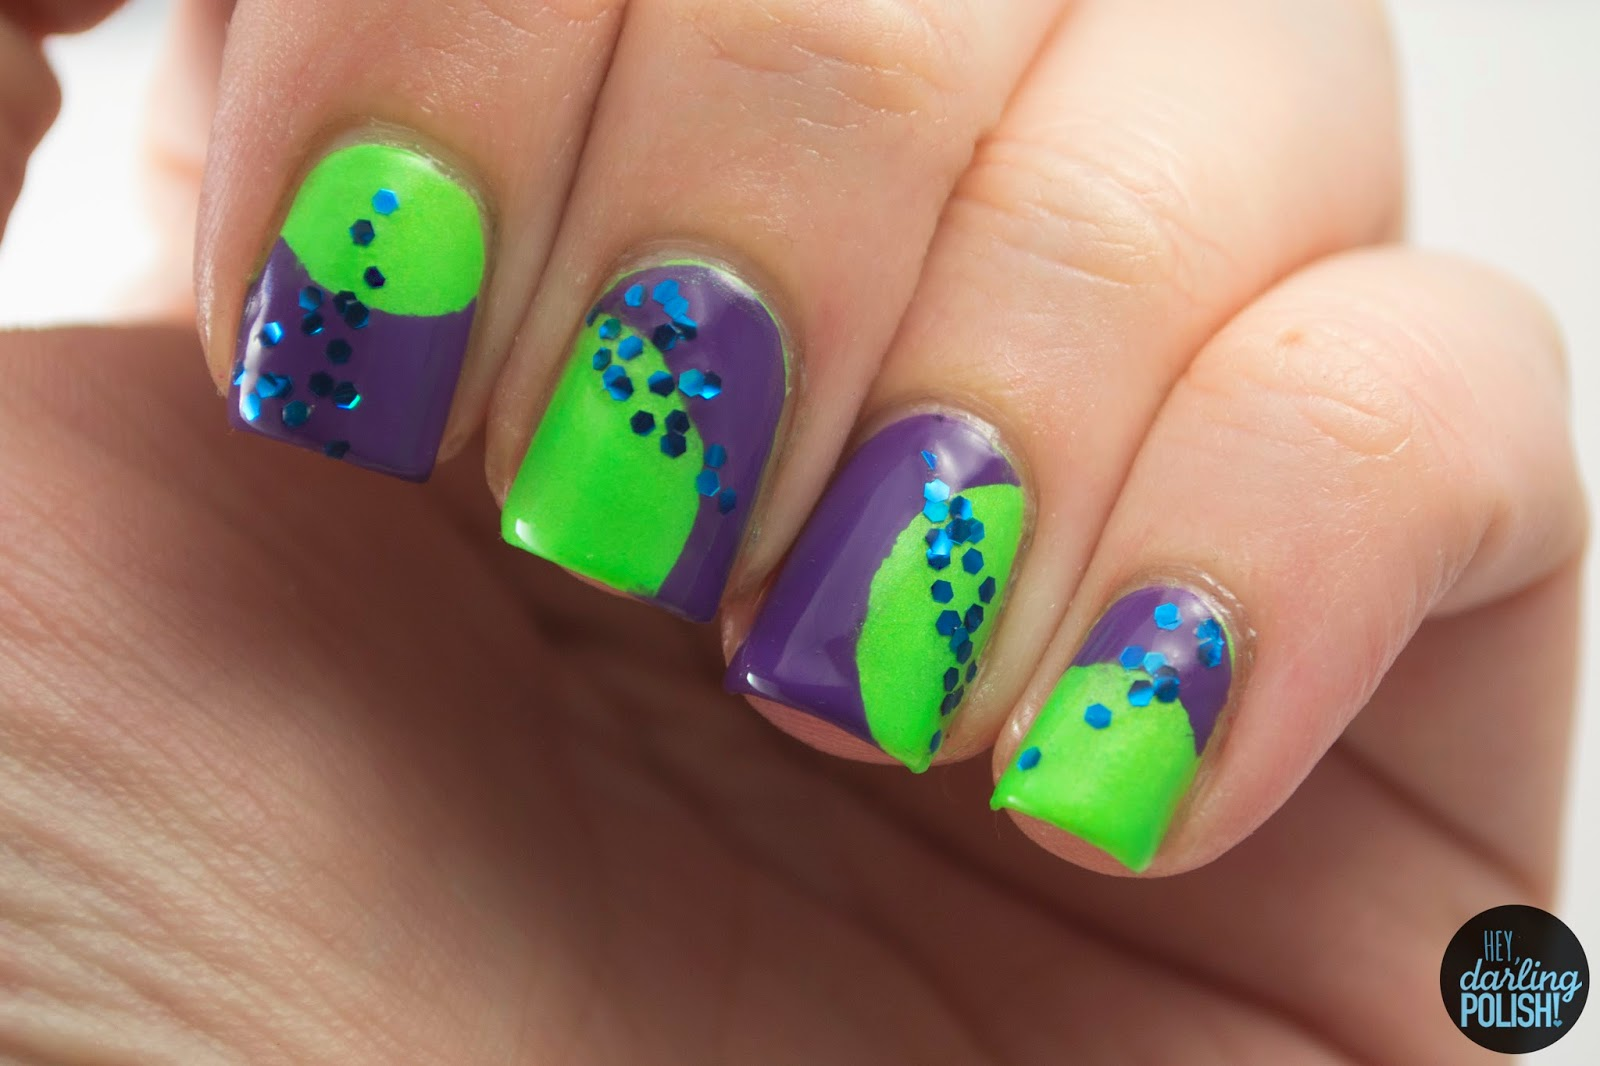 nails, nail art, nail polish, polish, tri polish challenge, tpc, green, blue, purple, hey darling polish, glitter